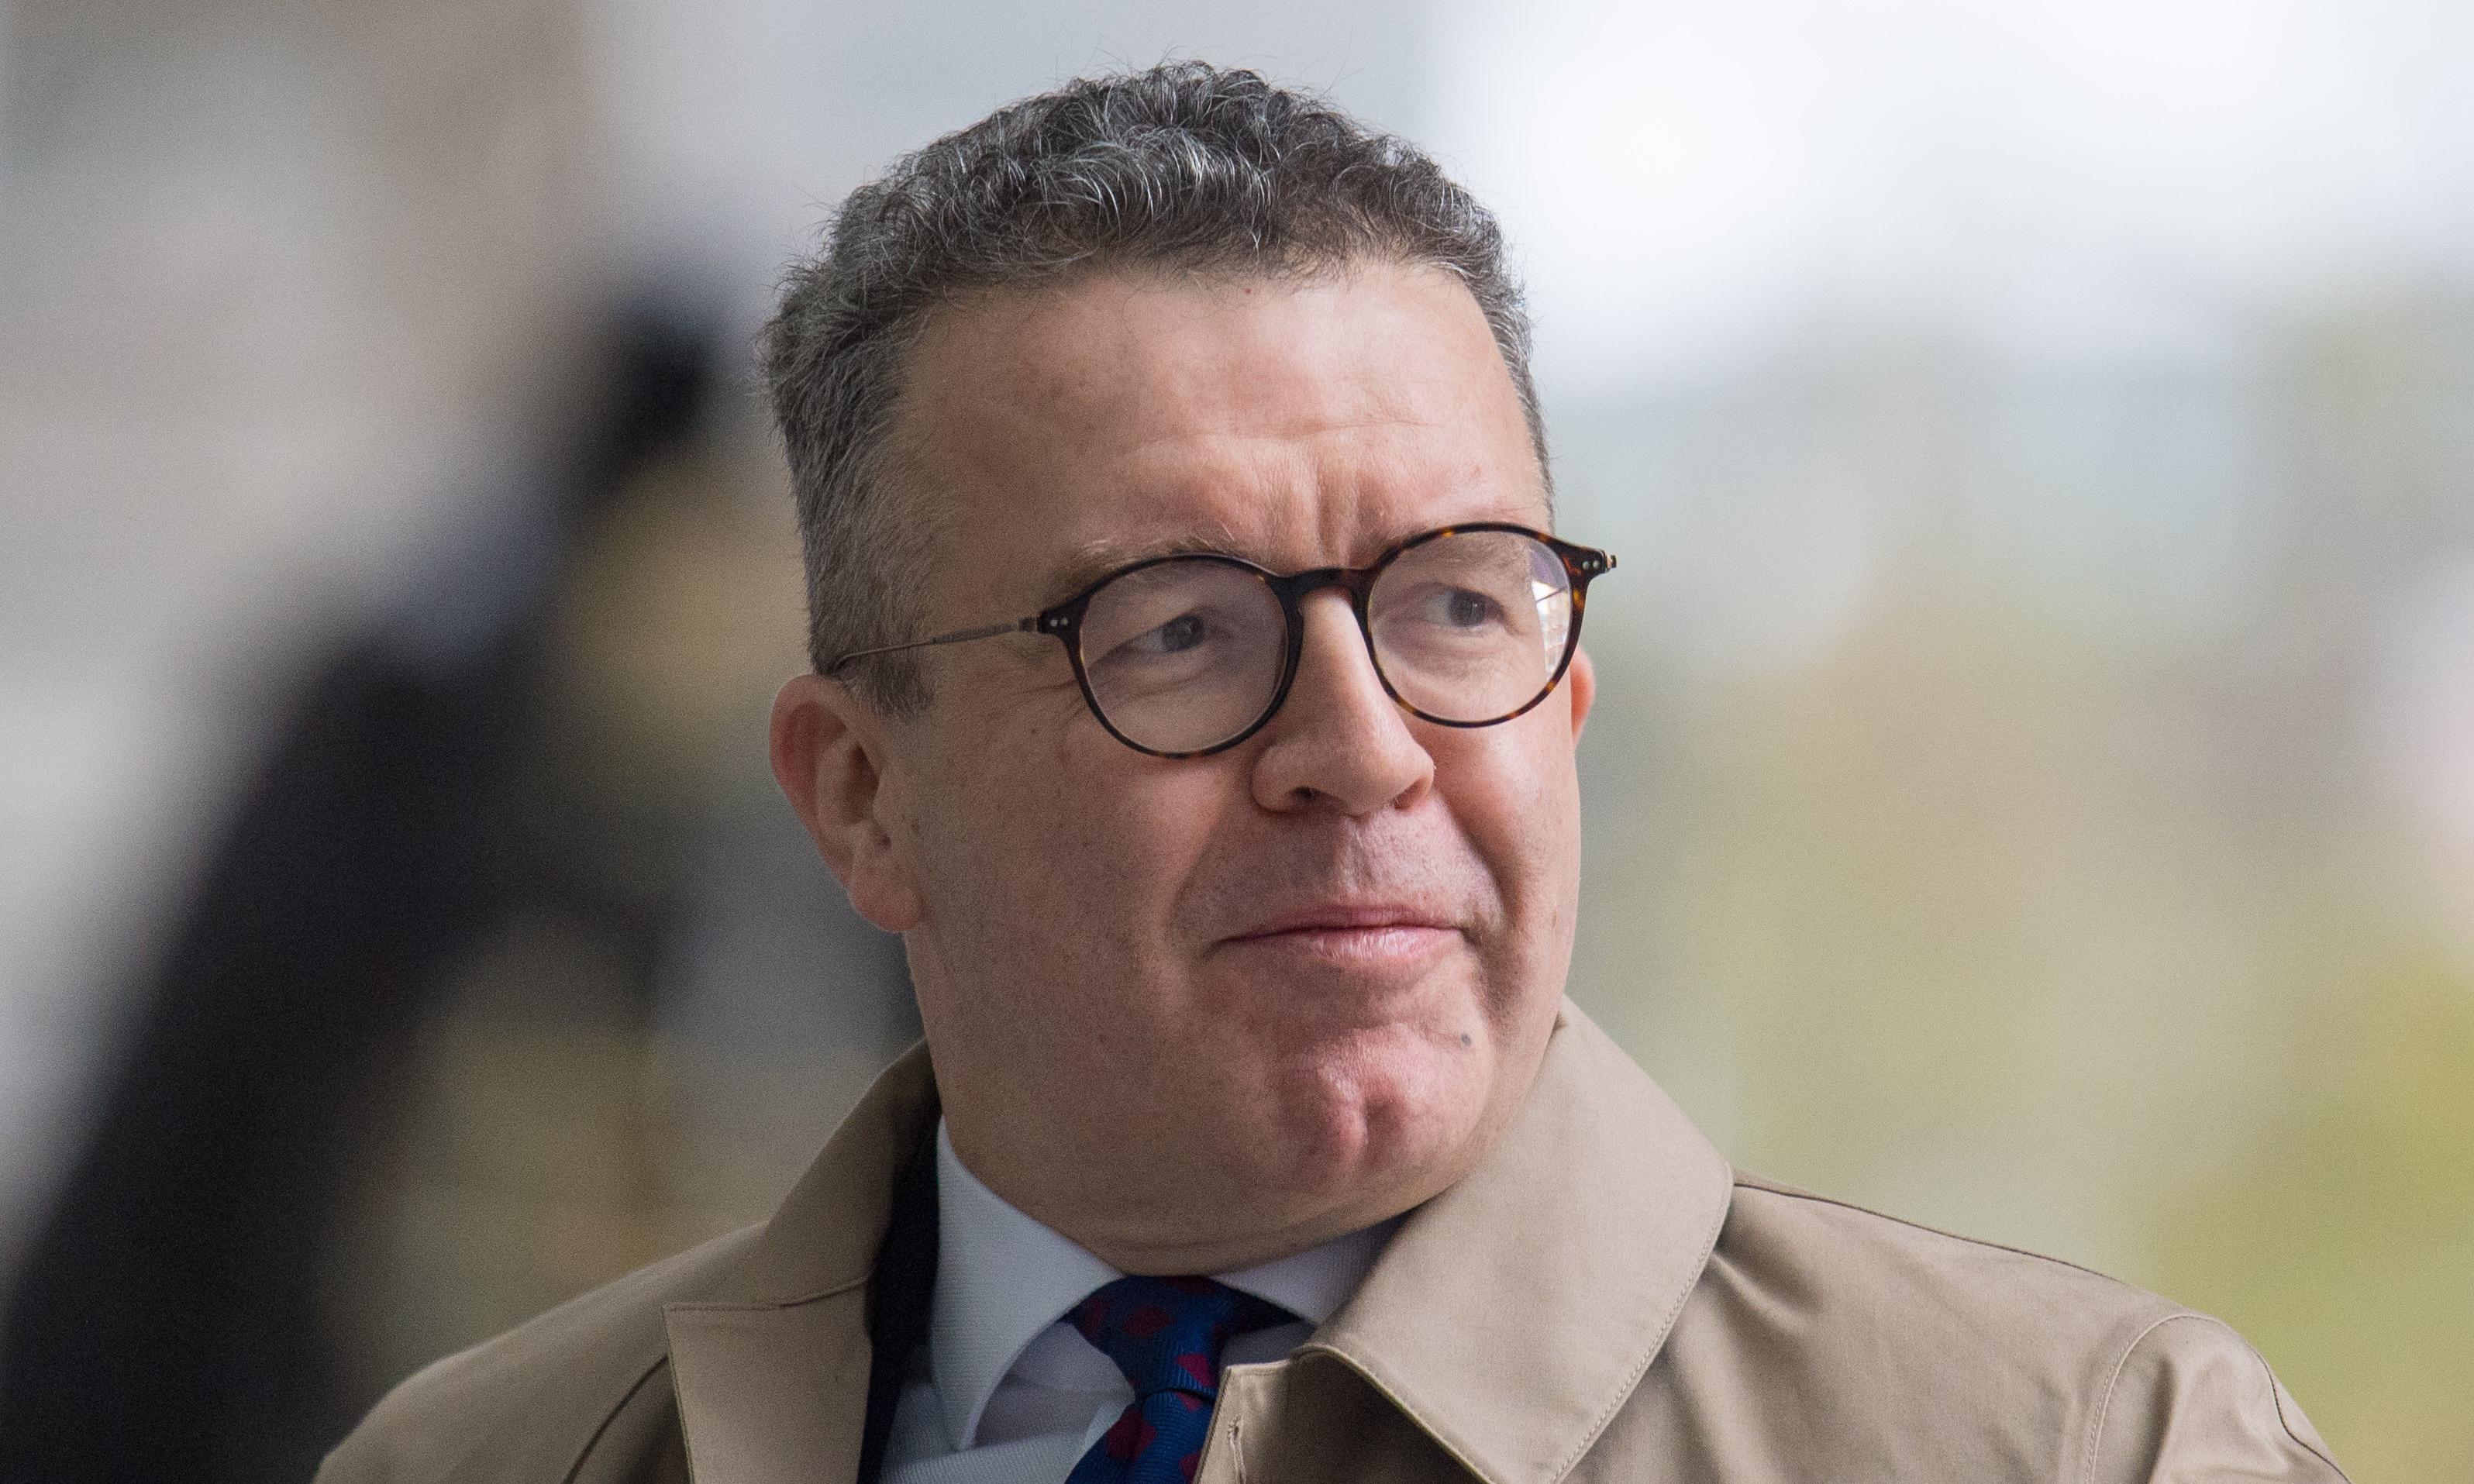 Questions over Tom Watson's decision to quit